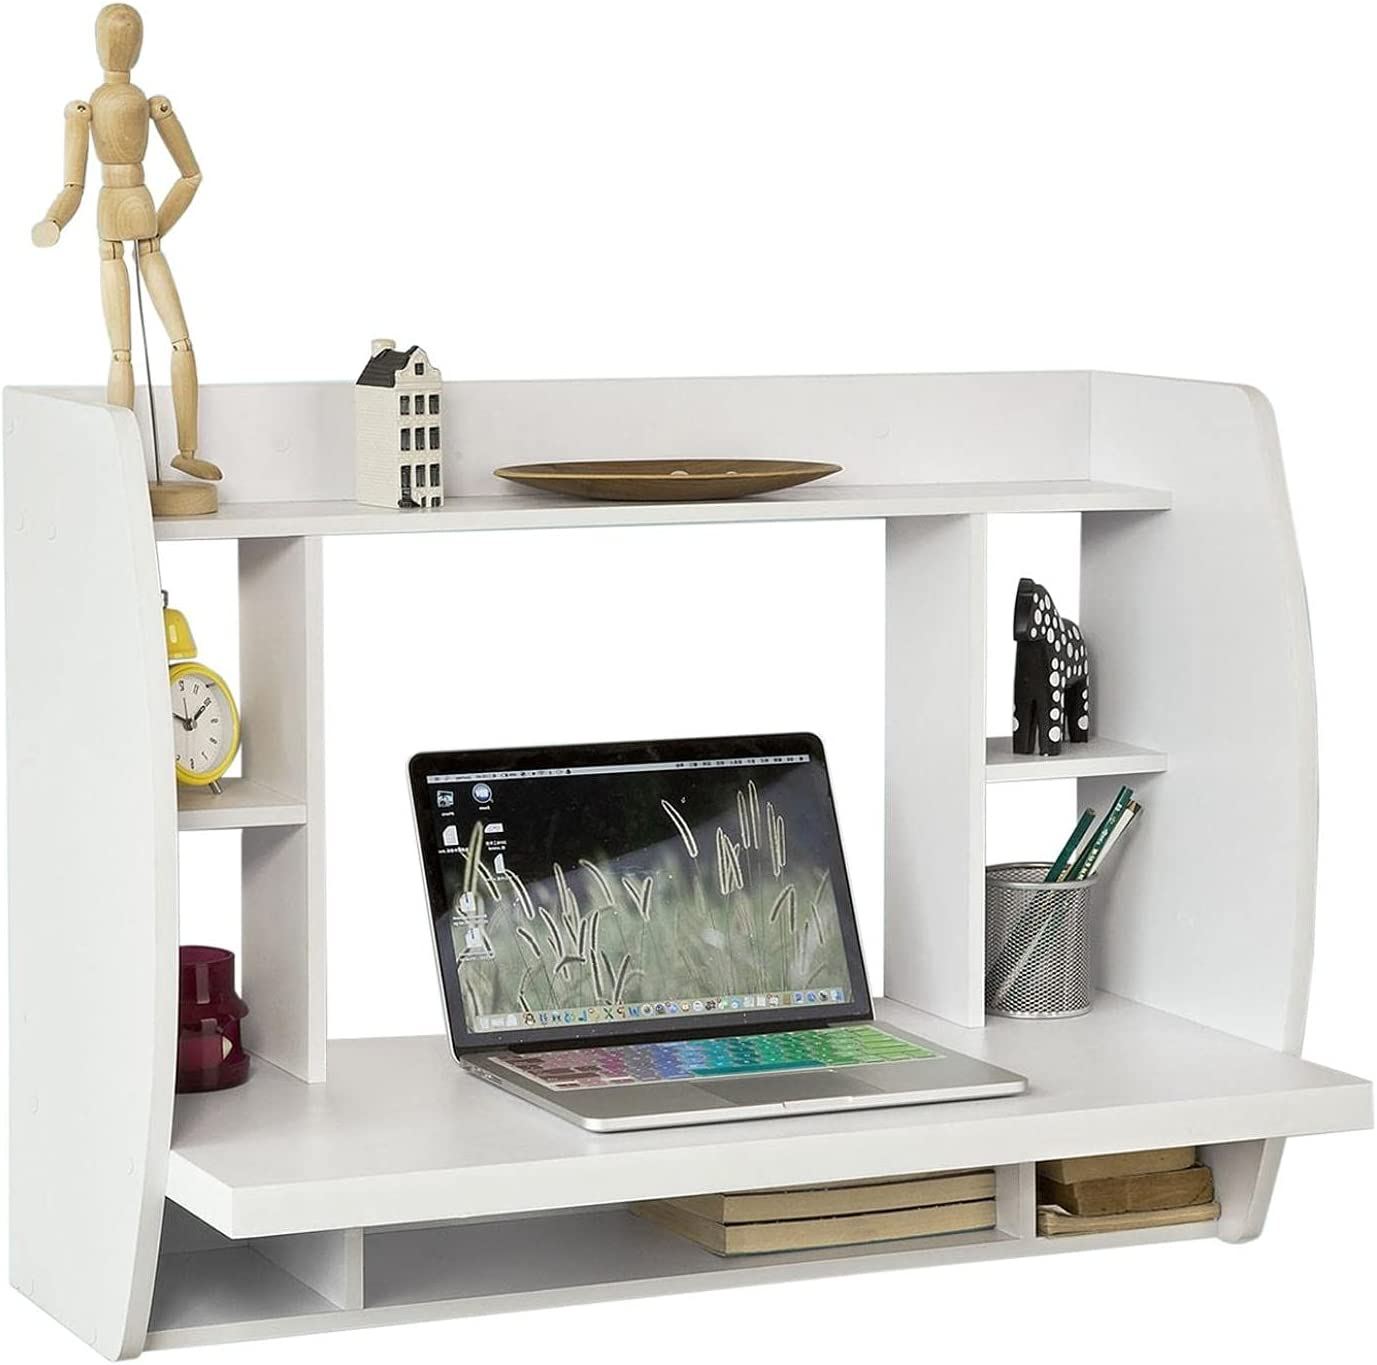 LVLONG Wall OFFicial Mounted Desk With Home Tabl Computer Shelves Storage Baltimore Mall